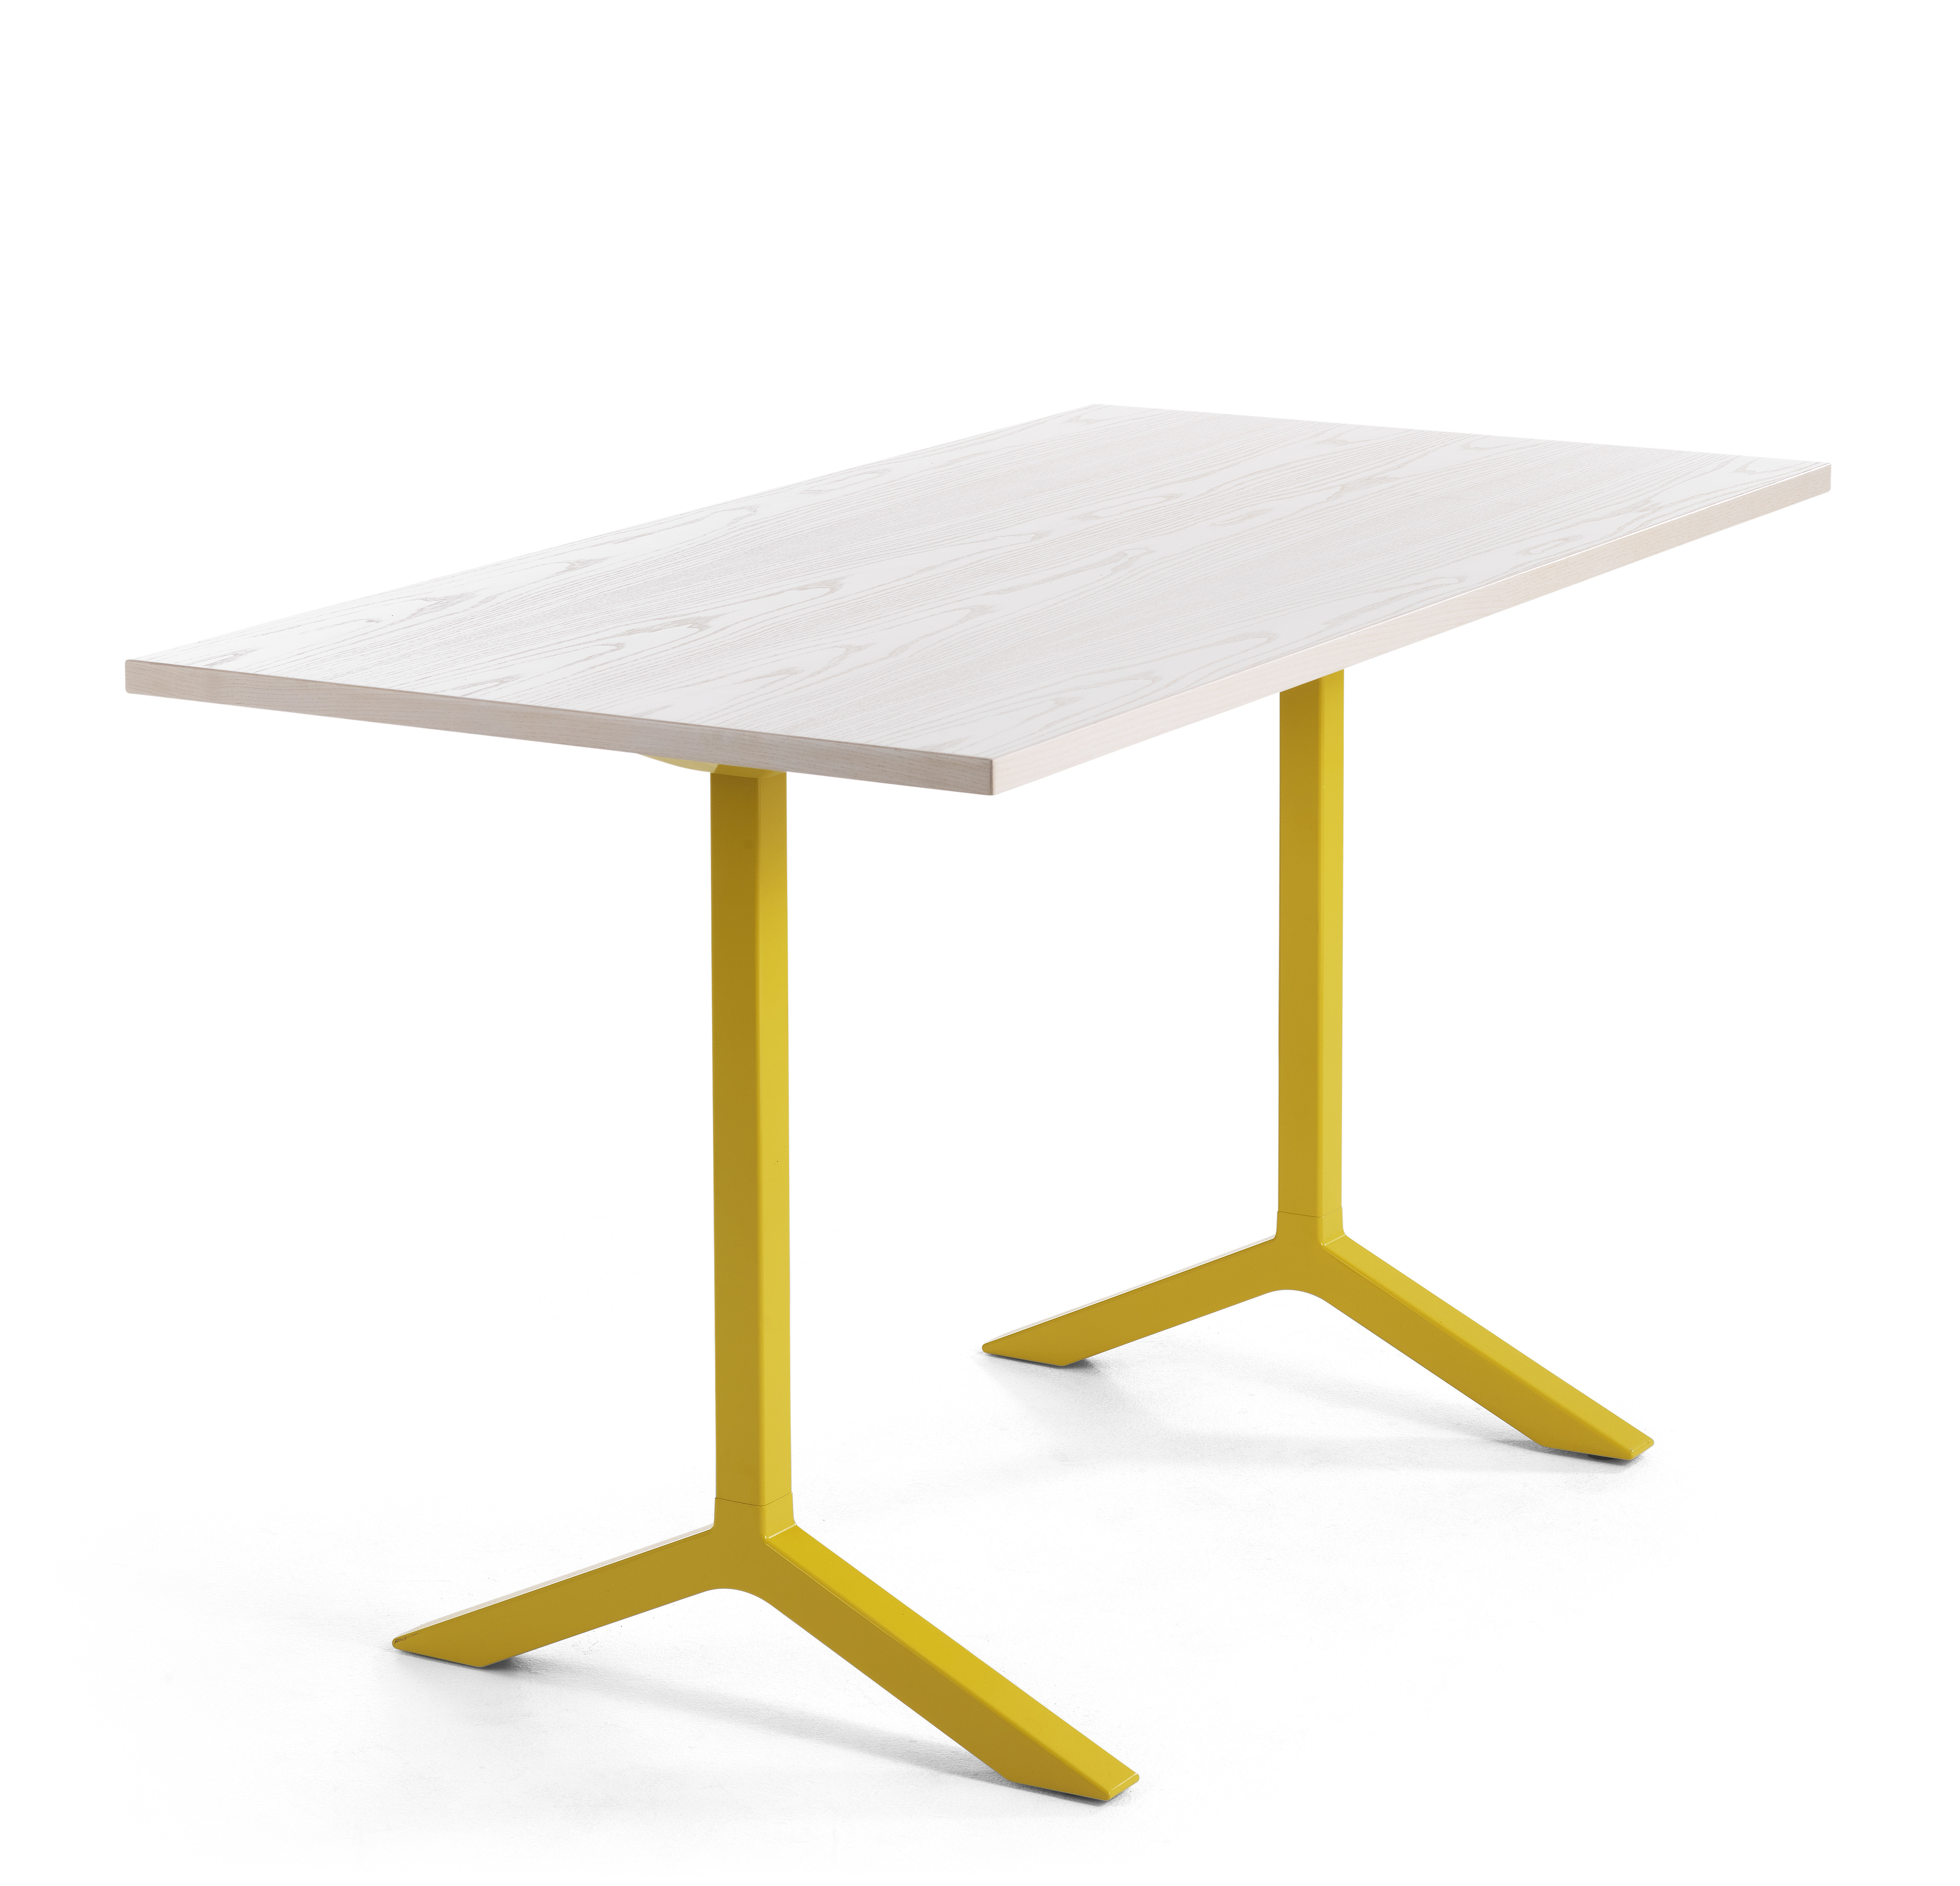 Funk bar tables lammhults for Table 140x140